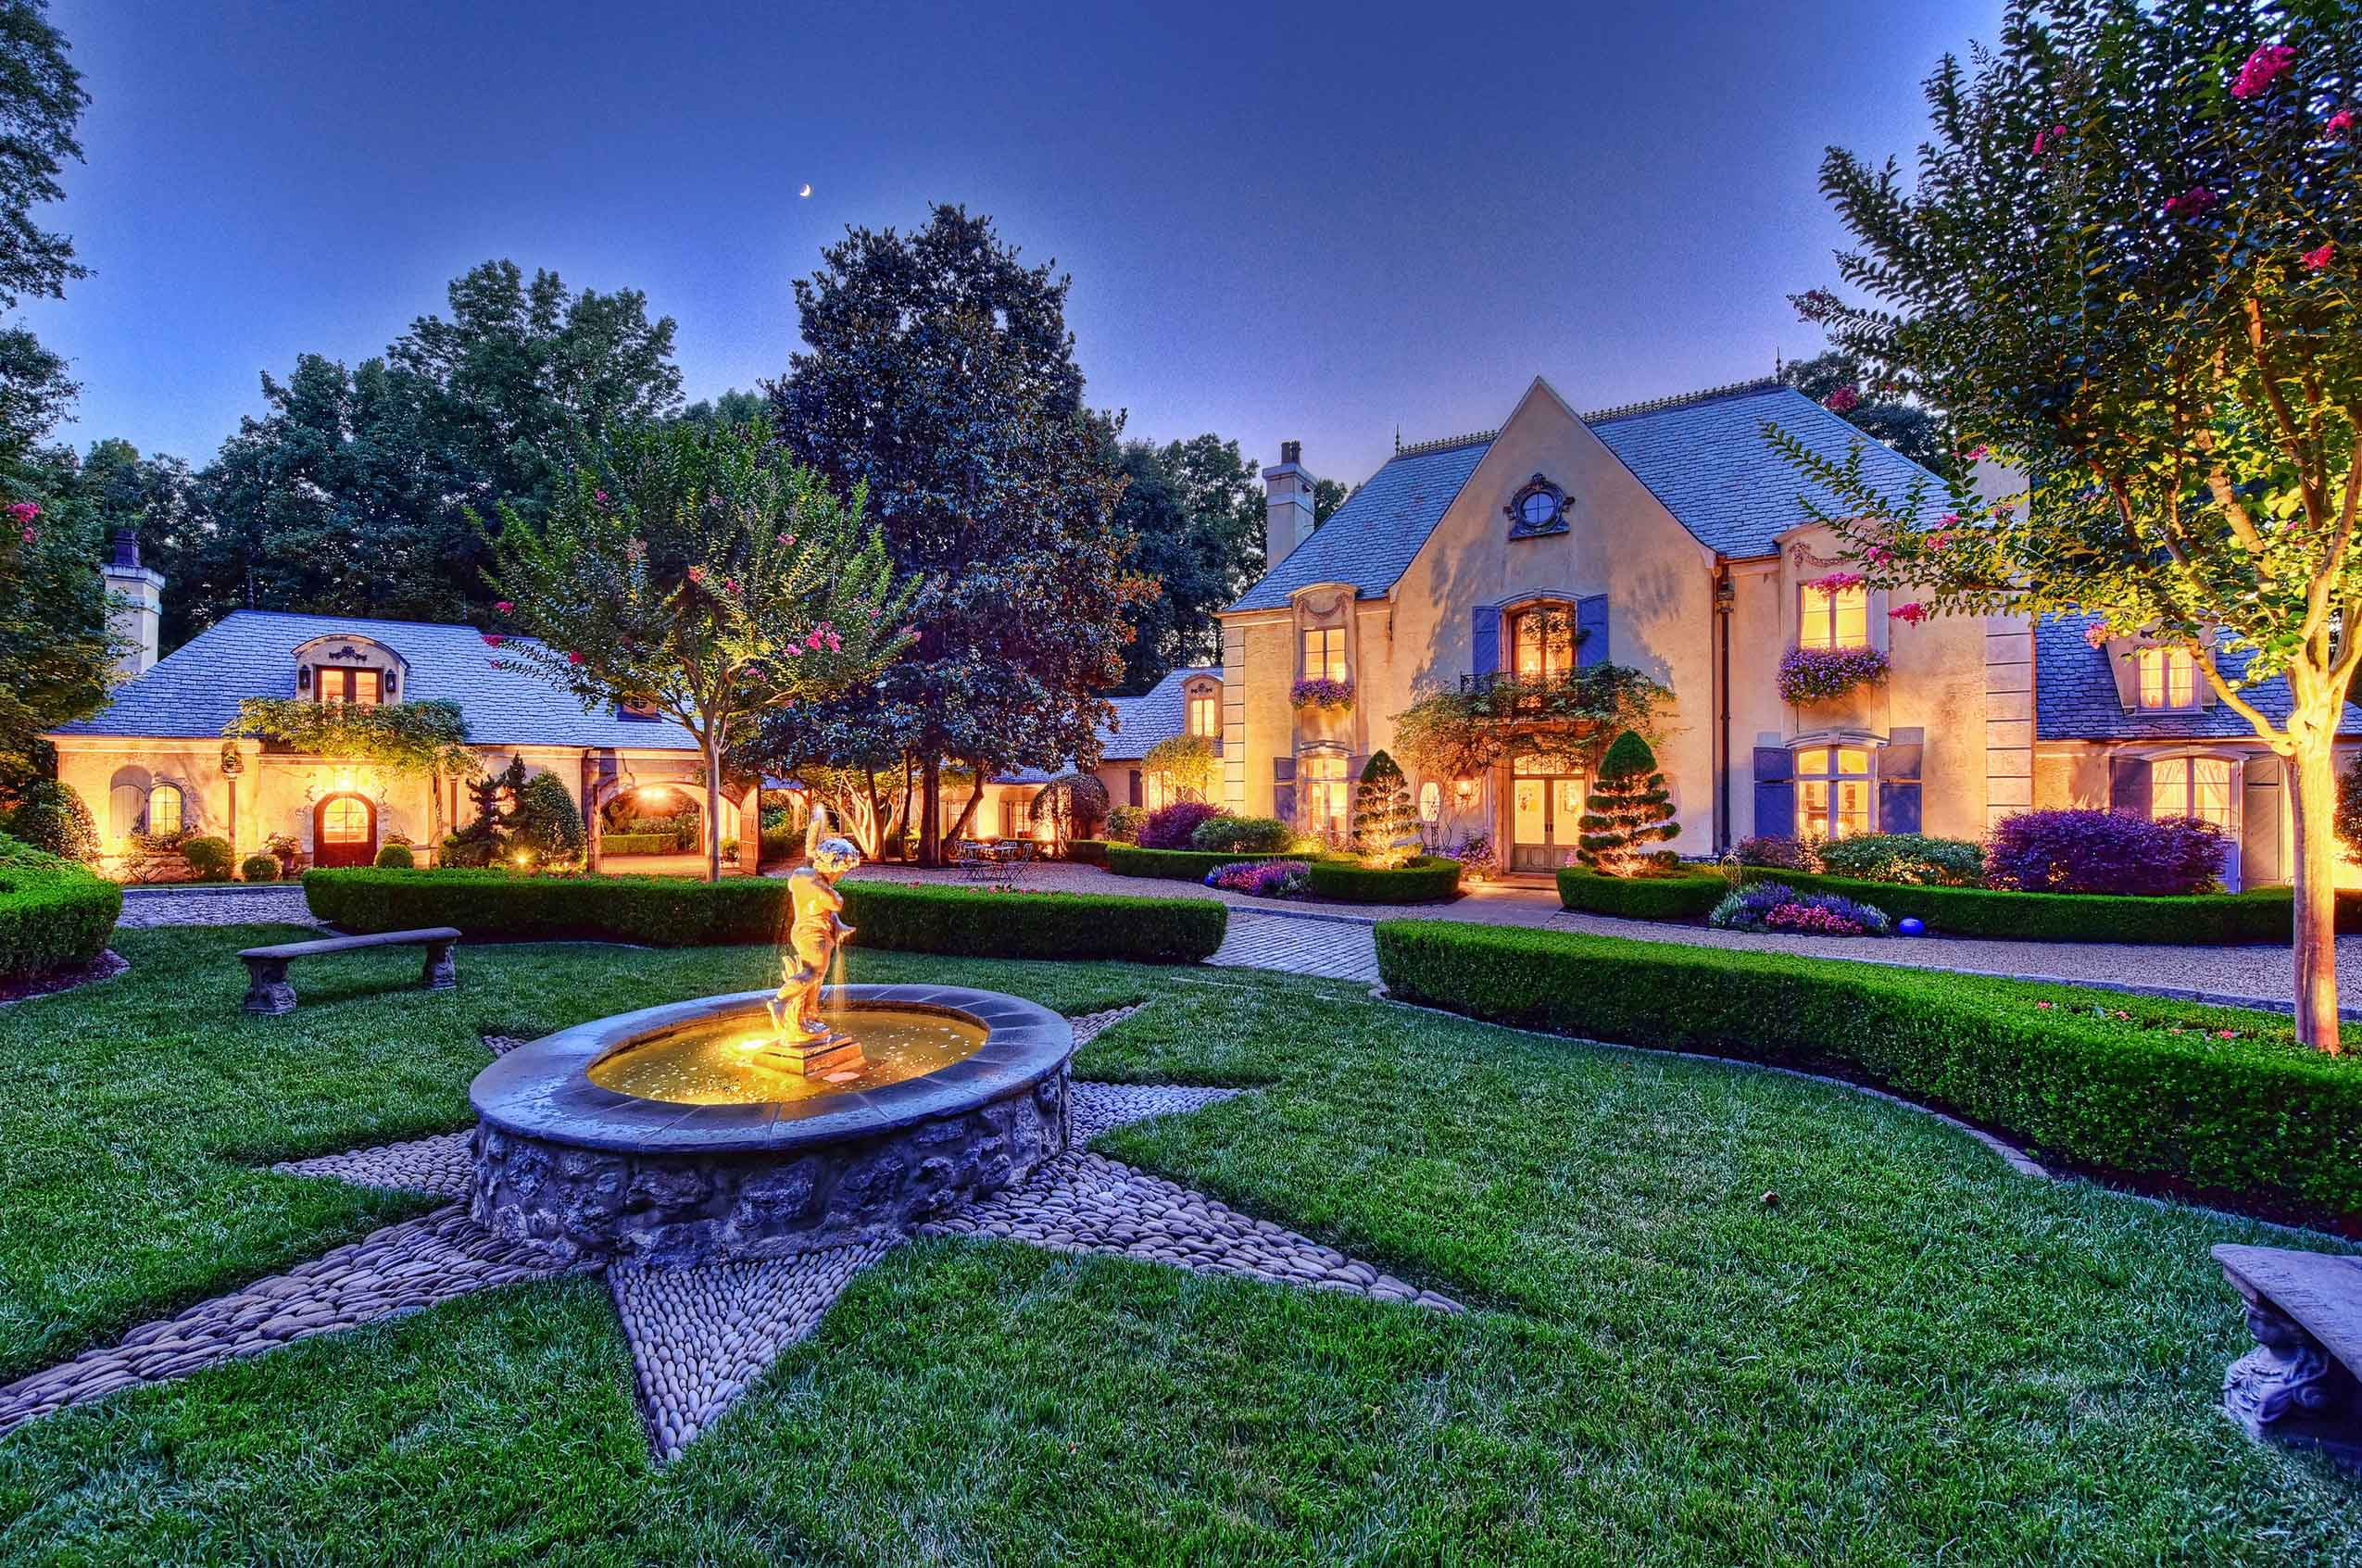 Graced with an authentic charm rooted in the rural French countryside, this artisan-designed estate exudes Old World elegance.